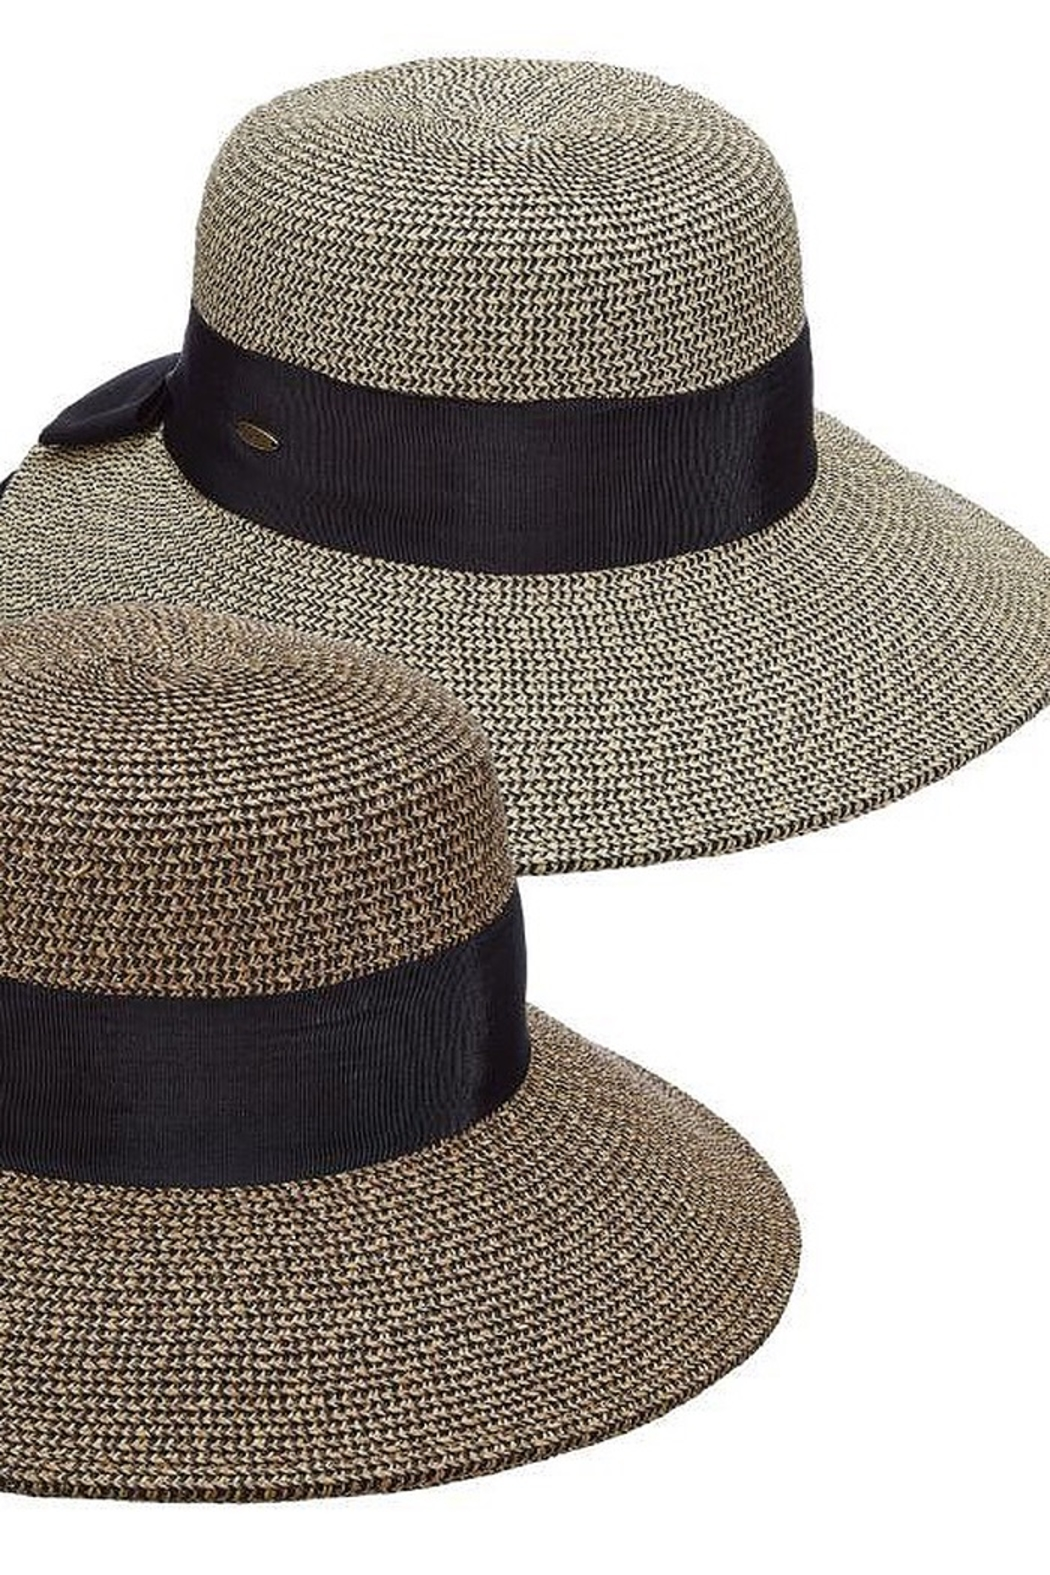 Dorfman Pacific  Riviera Hat - Front Cropped Image